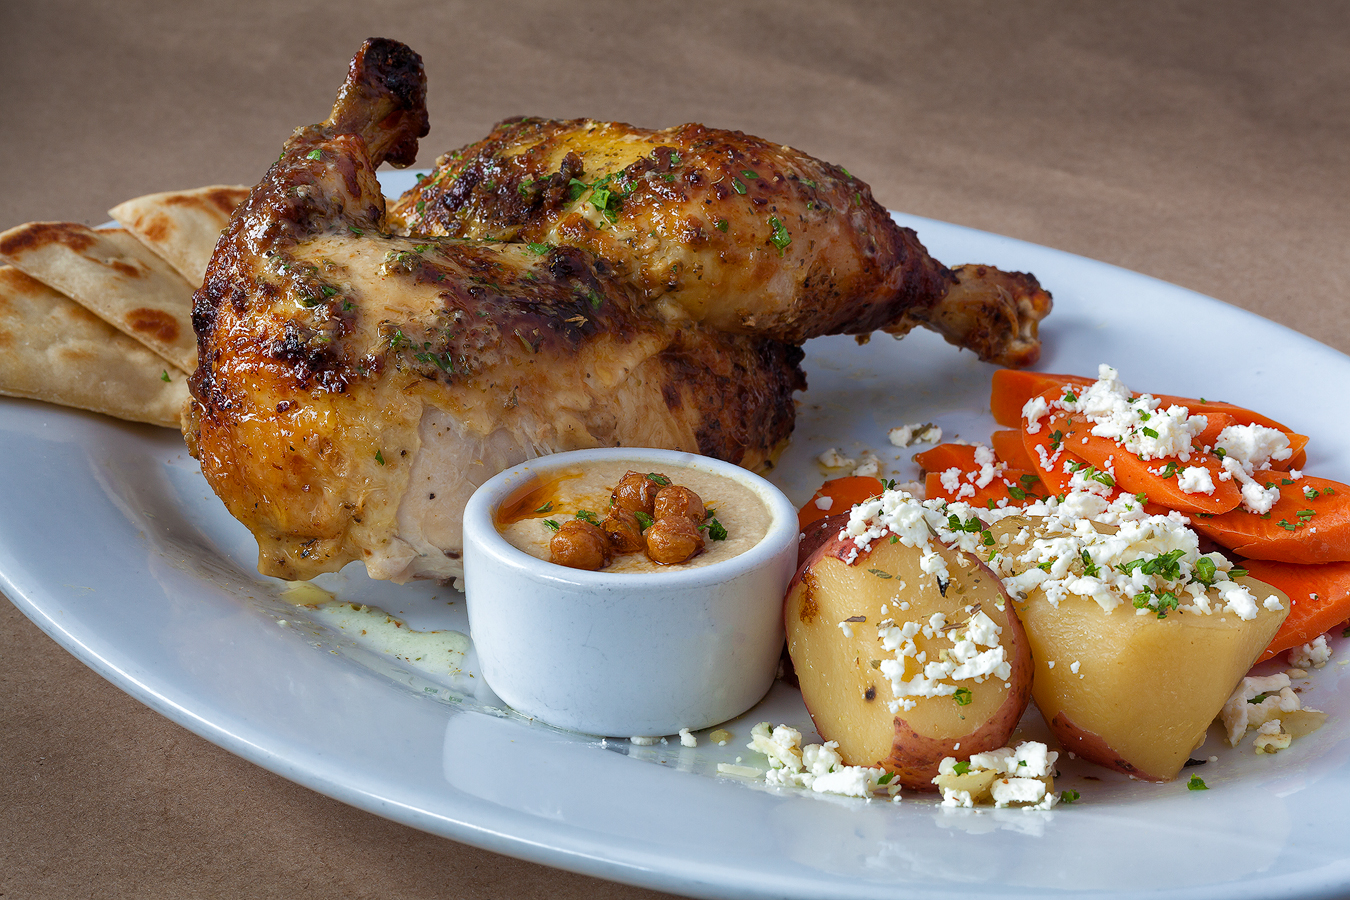 Our famous roasted chicken